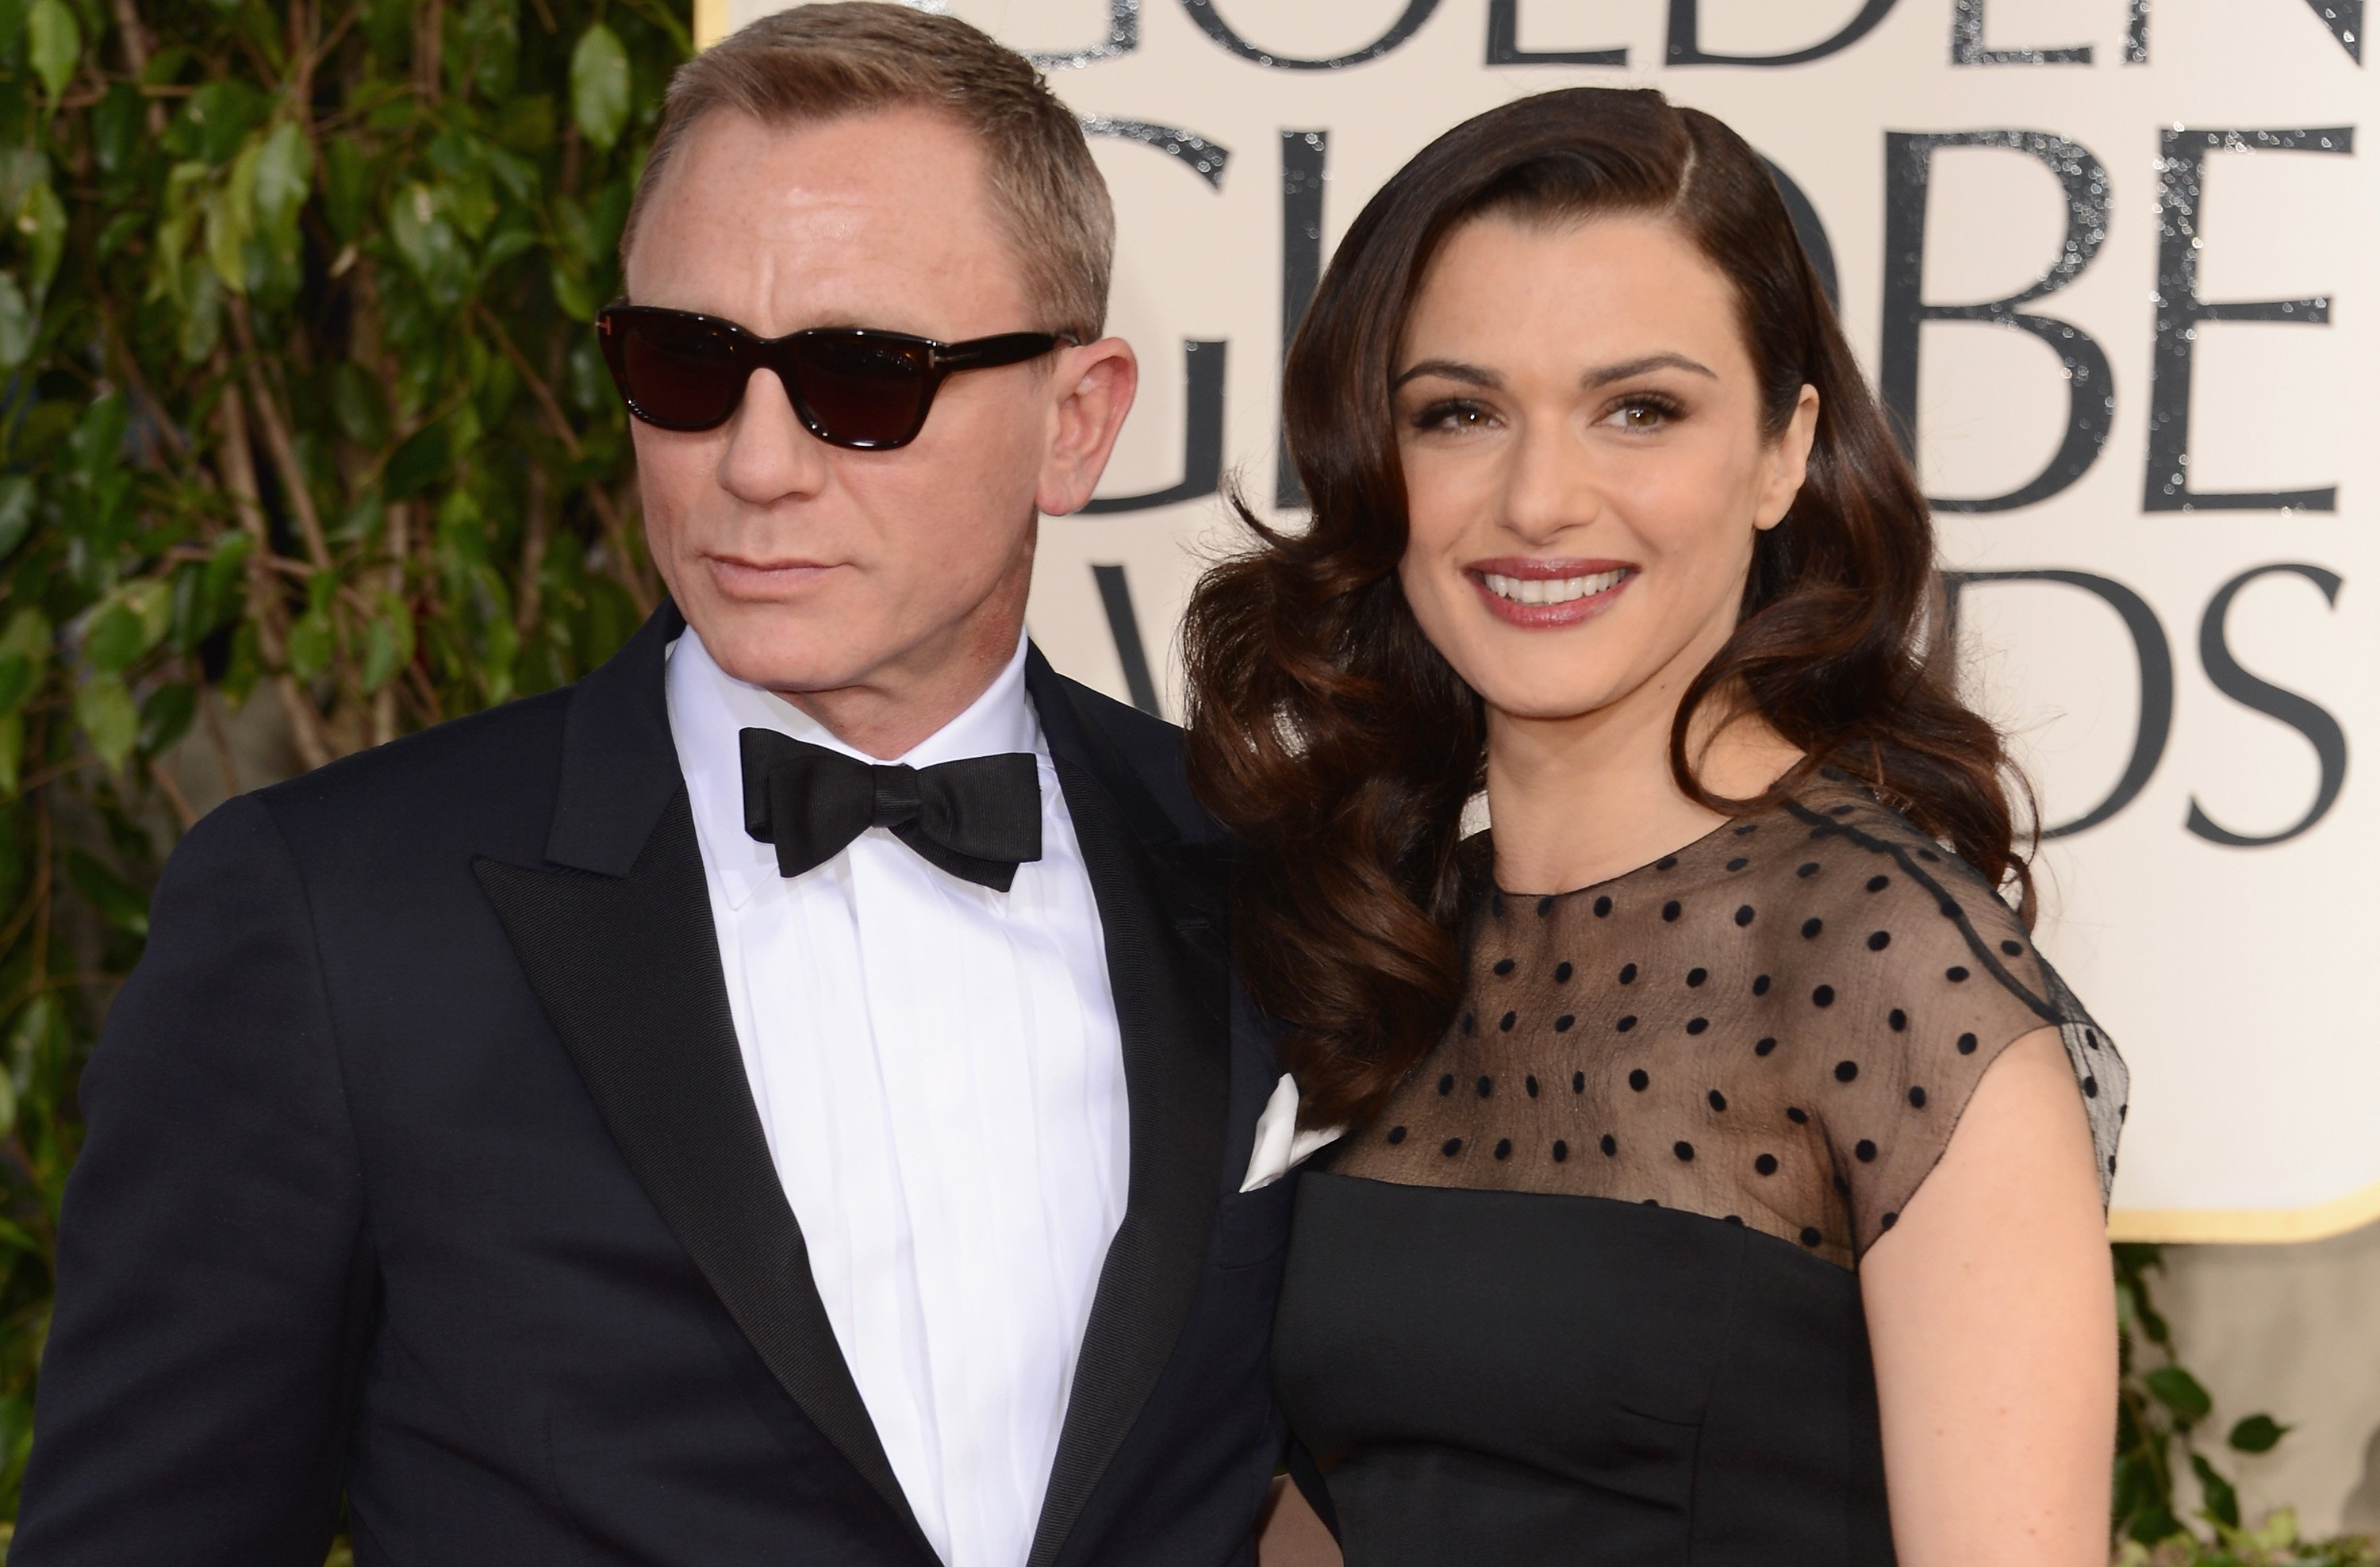 Actors Daniel Craig and Rachel Weisz arrive at the 70th Annual Golden Globe Awards held at The Beverly Hilton Hotel on January 13, 2013 in Beverly Hills, California. | Source: Getty Images